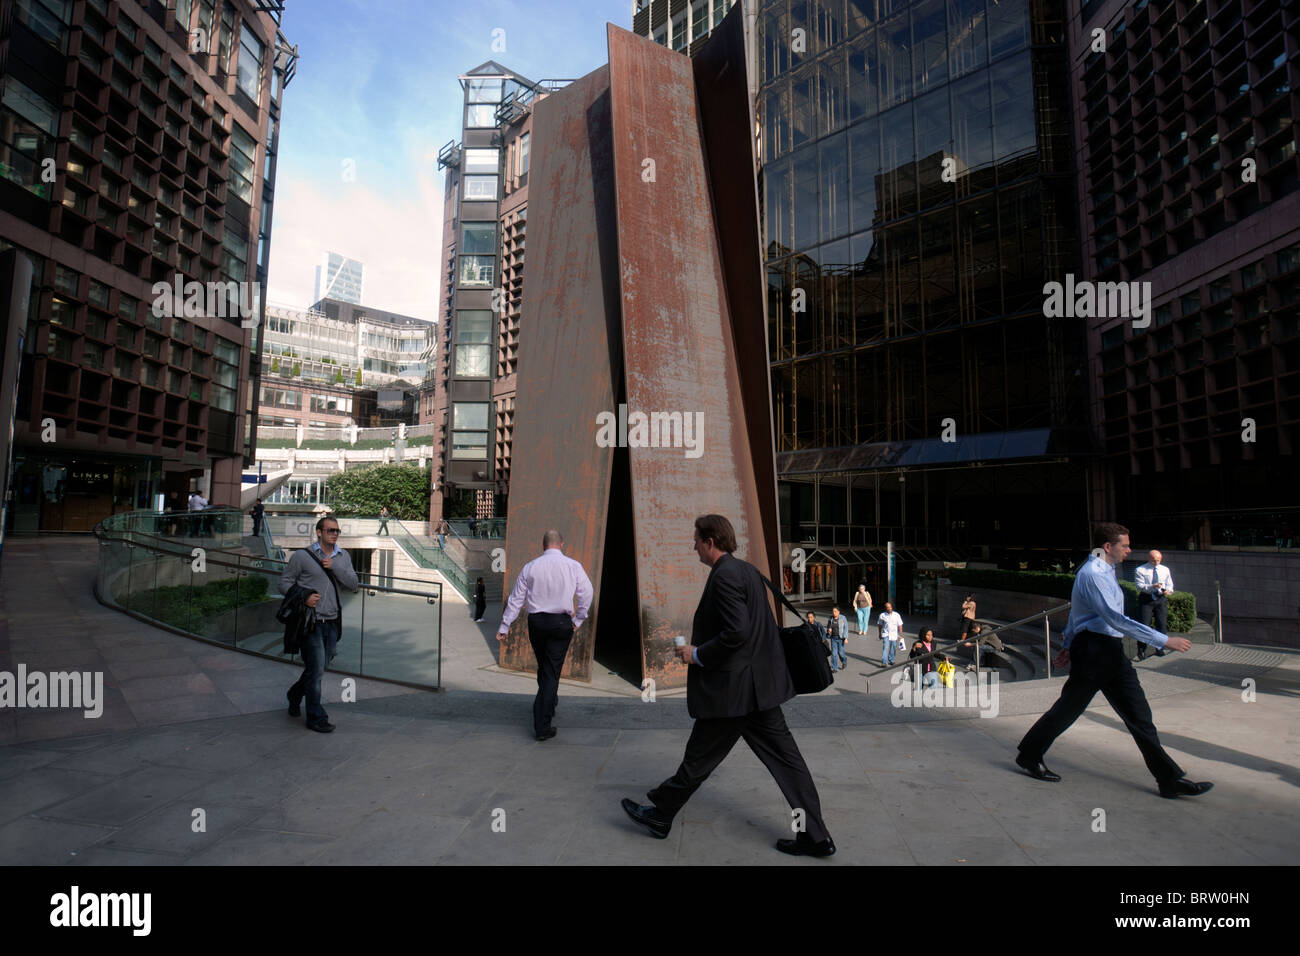 broadgate circle in the city of london - Stock Image